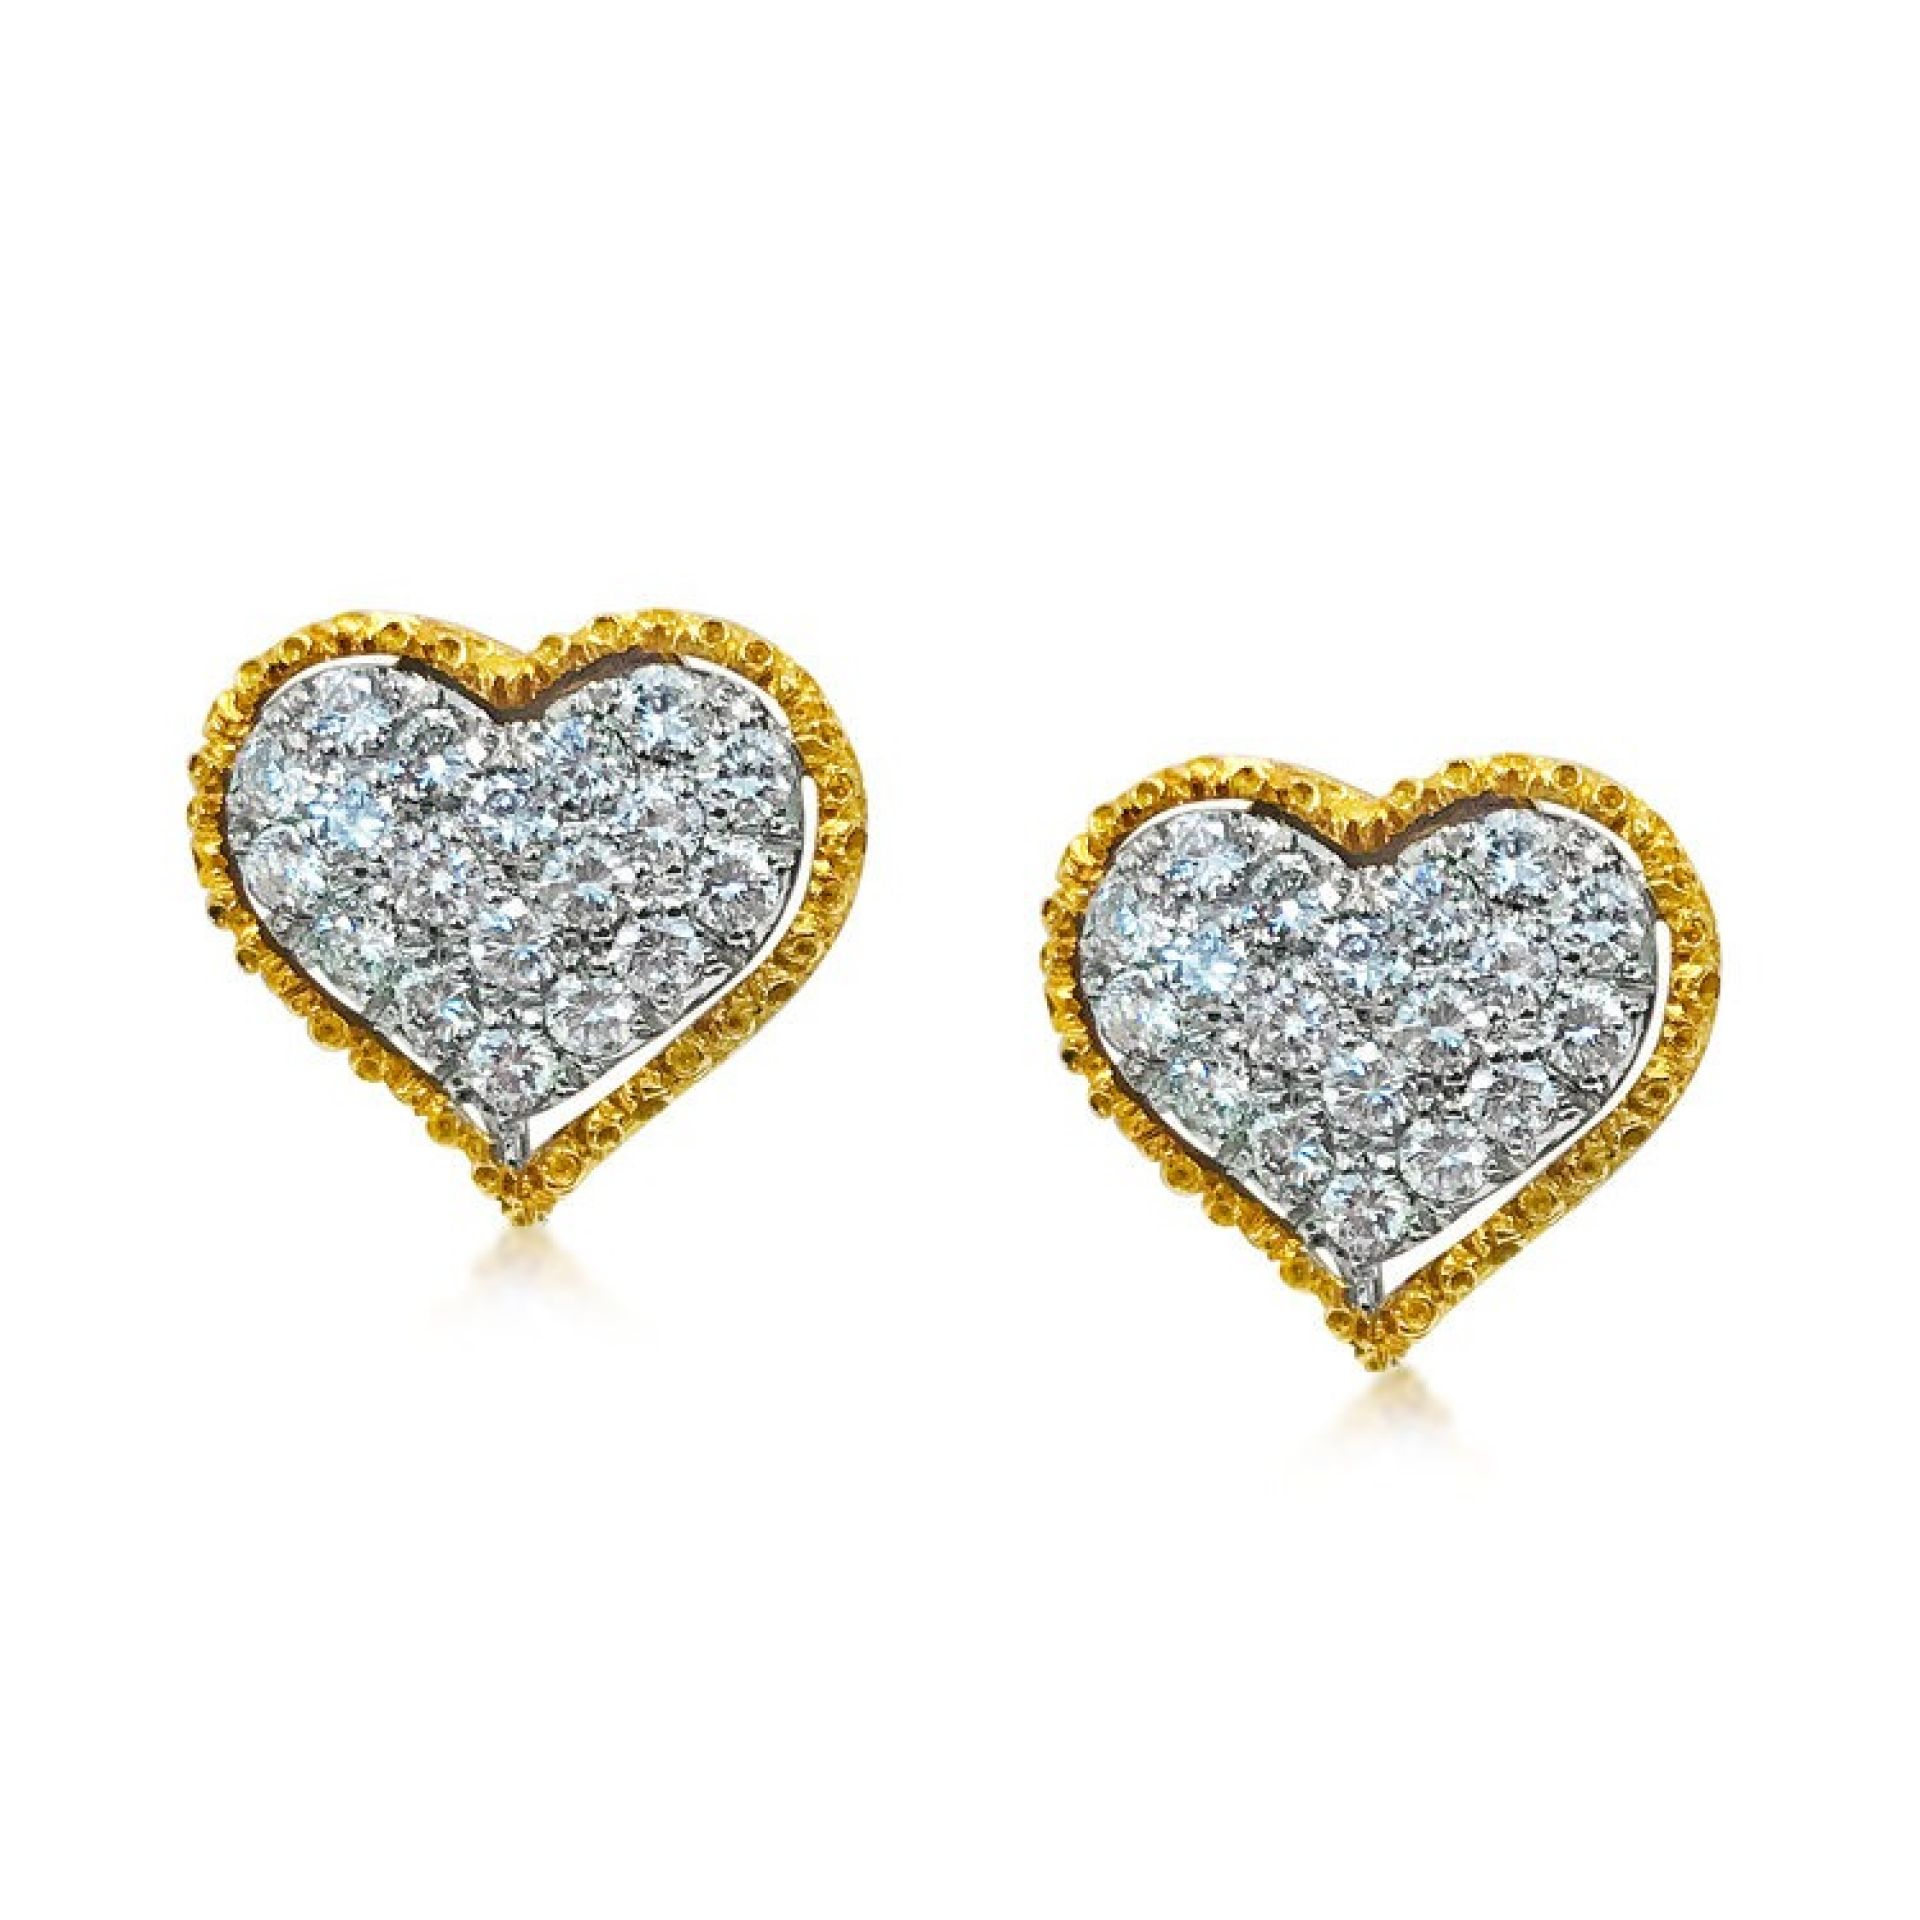 A PAIR OF HEART-SHAPED GOLD AND DIAMOND EARRINGS